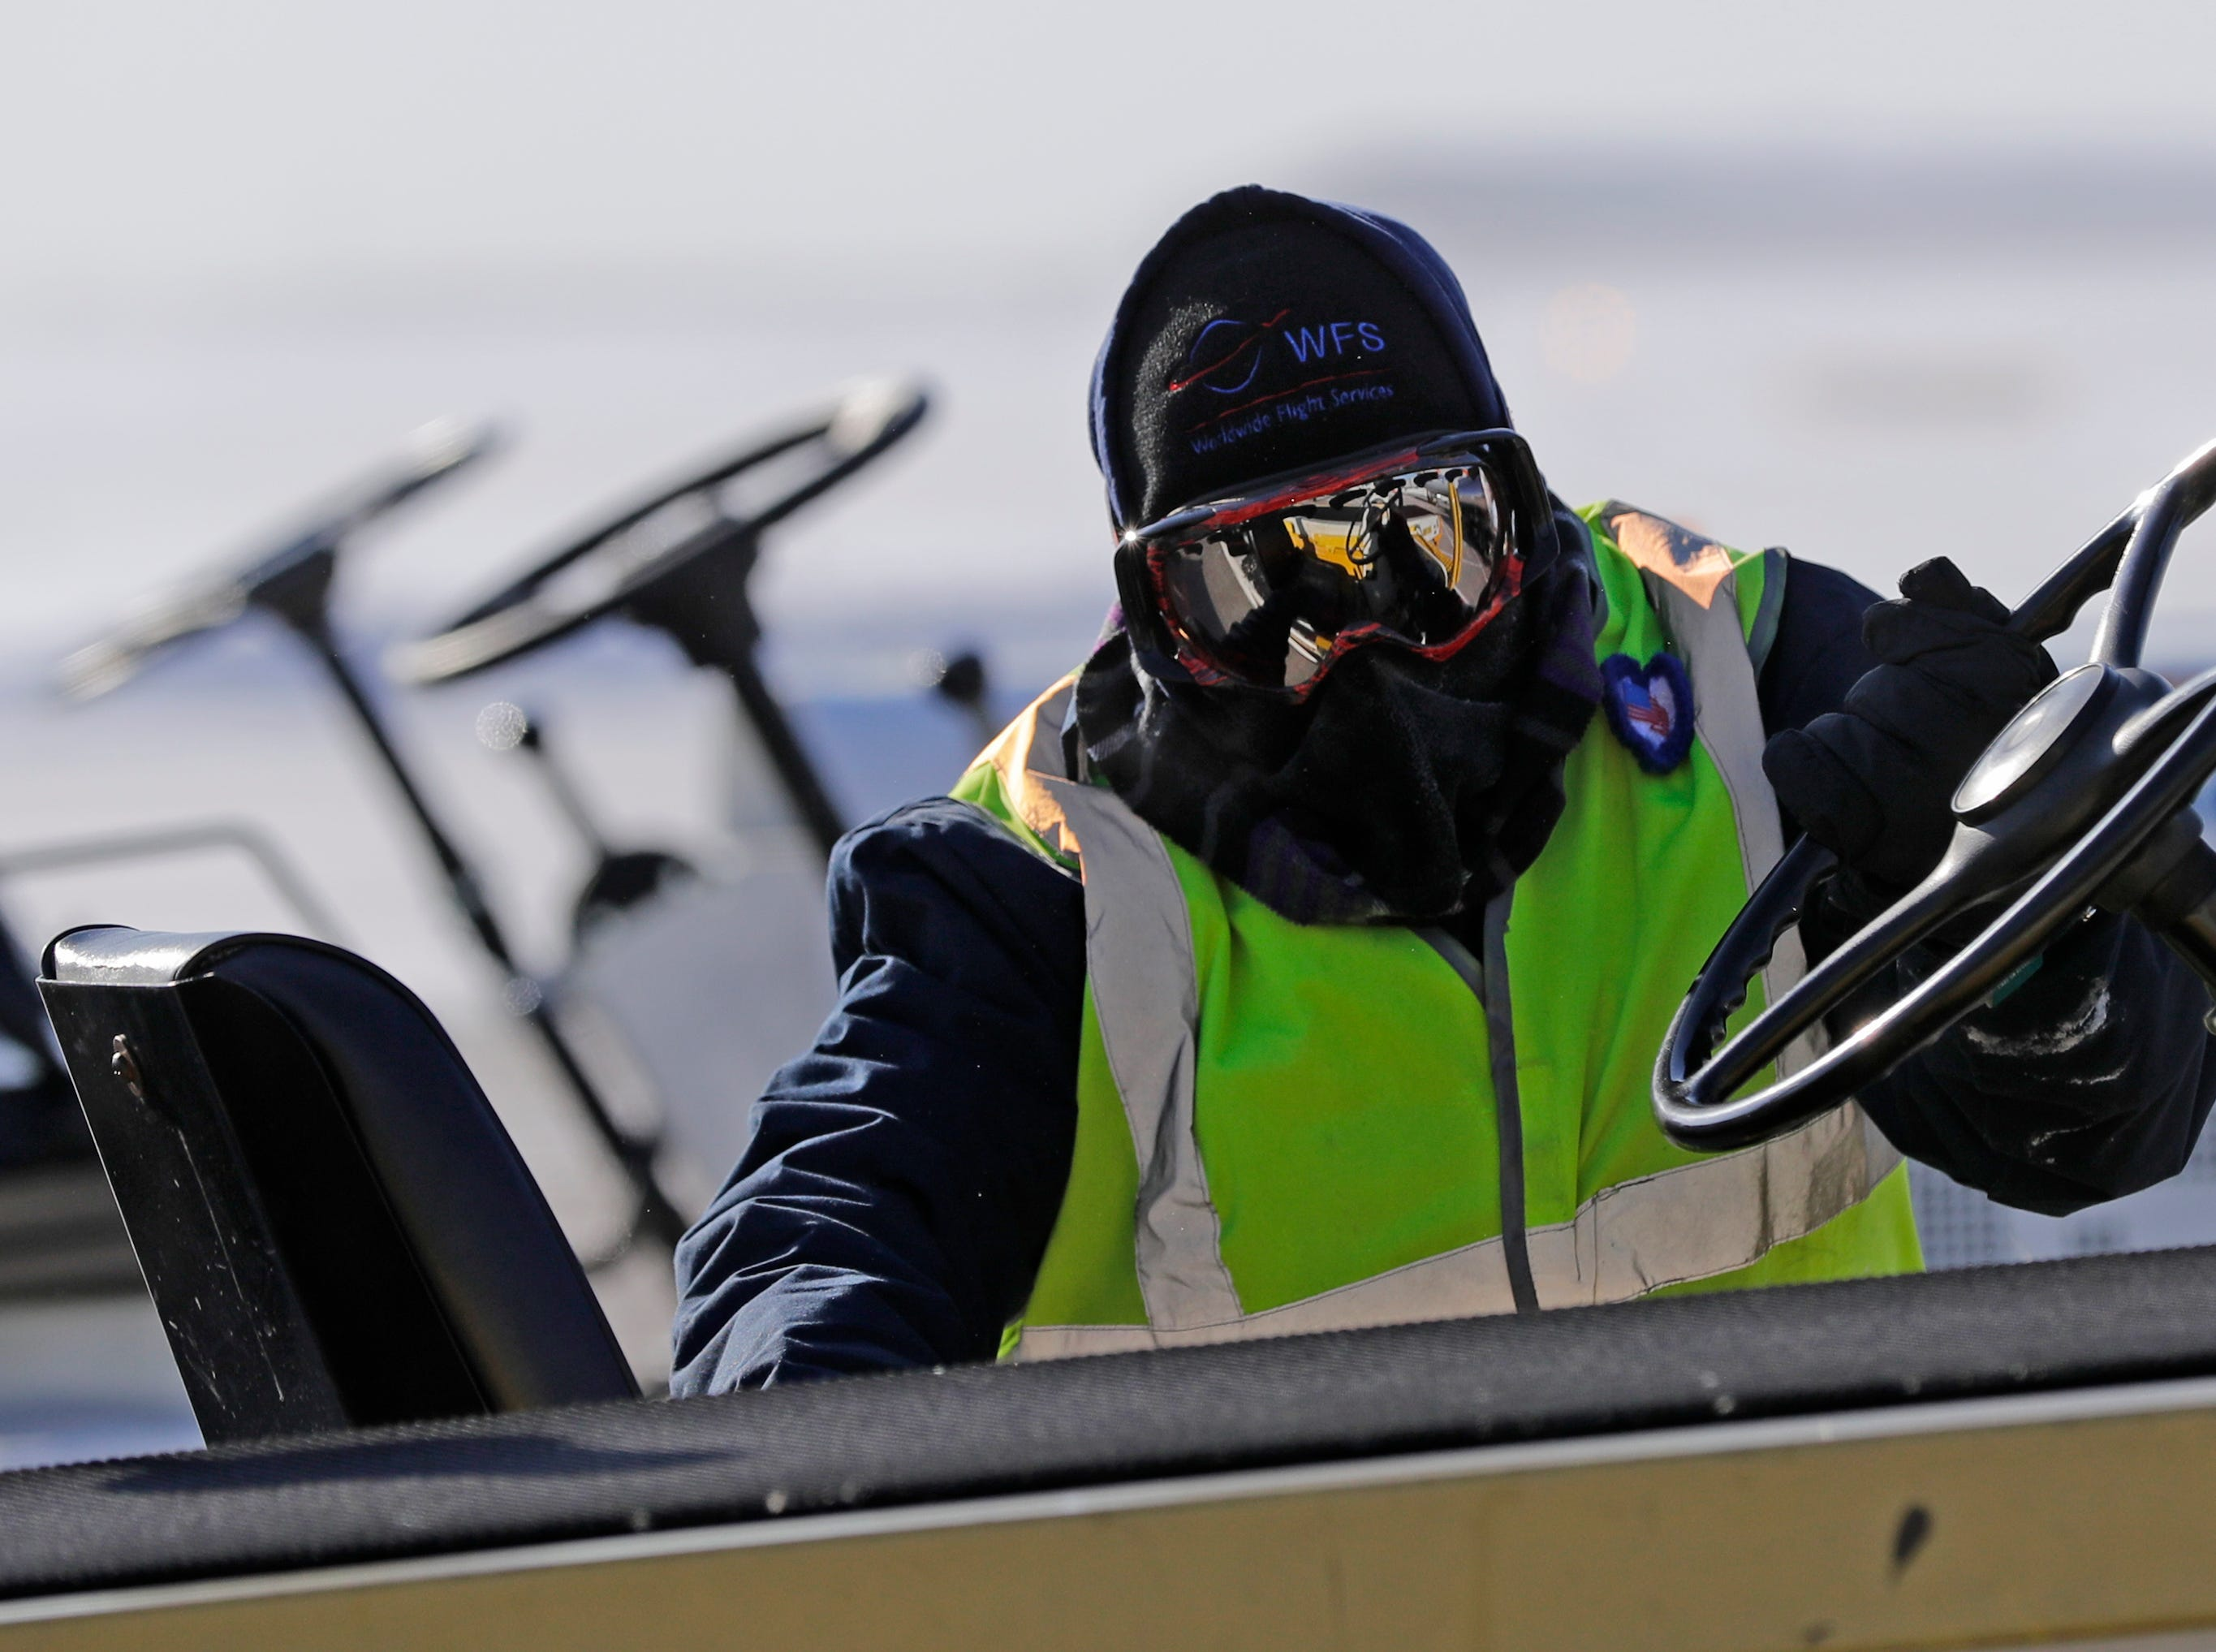 A Worldwide Flight Services employee braves frigid temperatures and high winds to use a luggage vehicle to remove luggage from an arriving Allegiant Airlines jet Wednesday, January 30, 2019, at the Appleton International Airport in Greenville, Wis. 